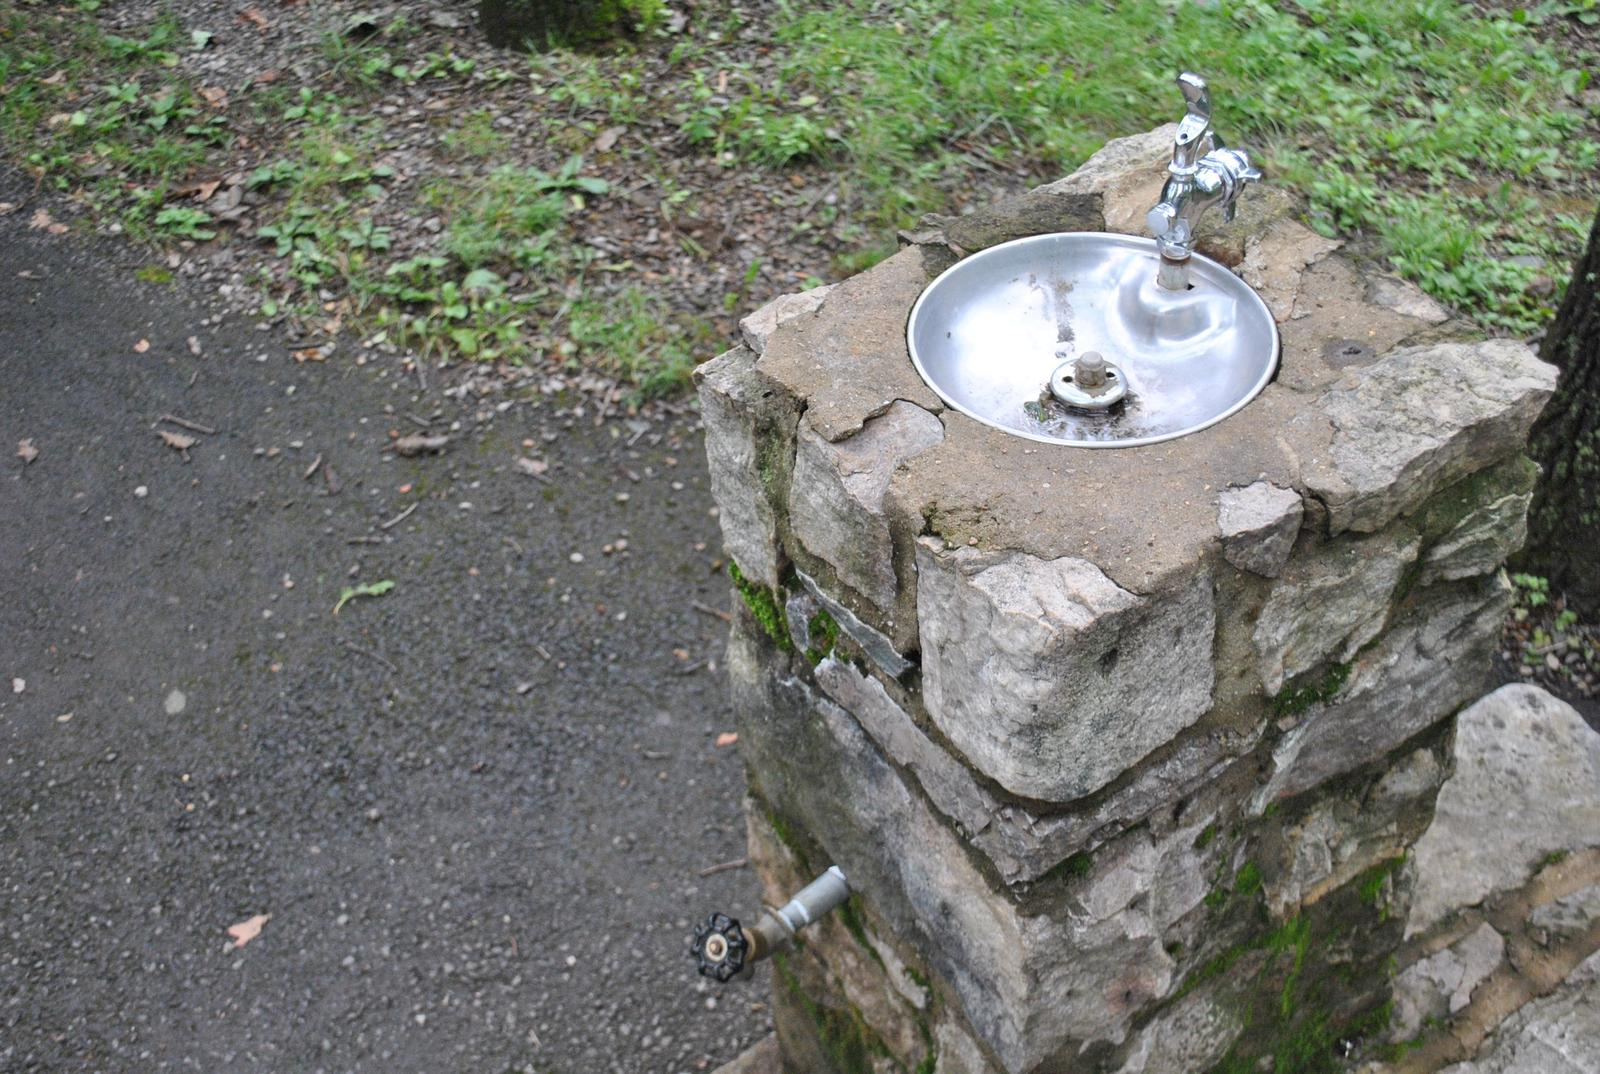 Mathews Arm Campground Water Fountain and Spigot